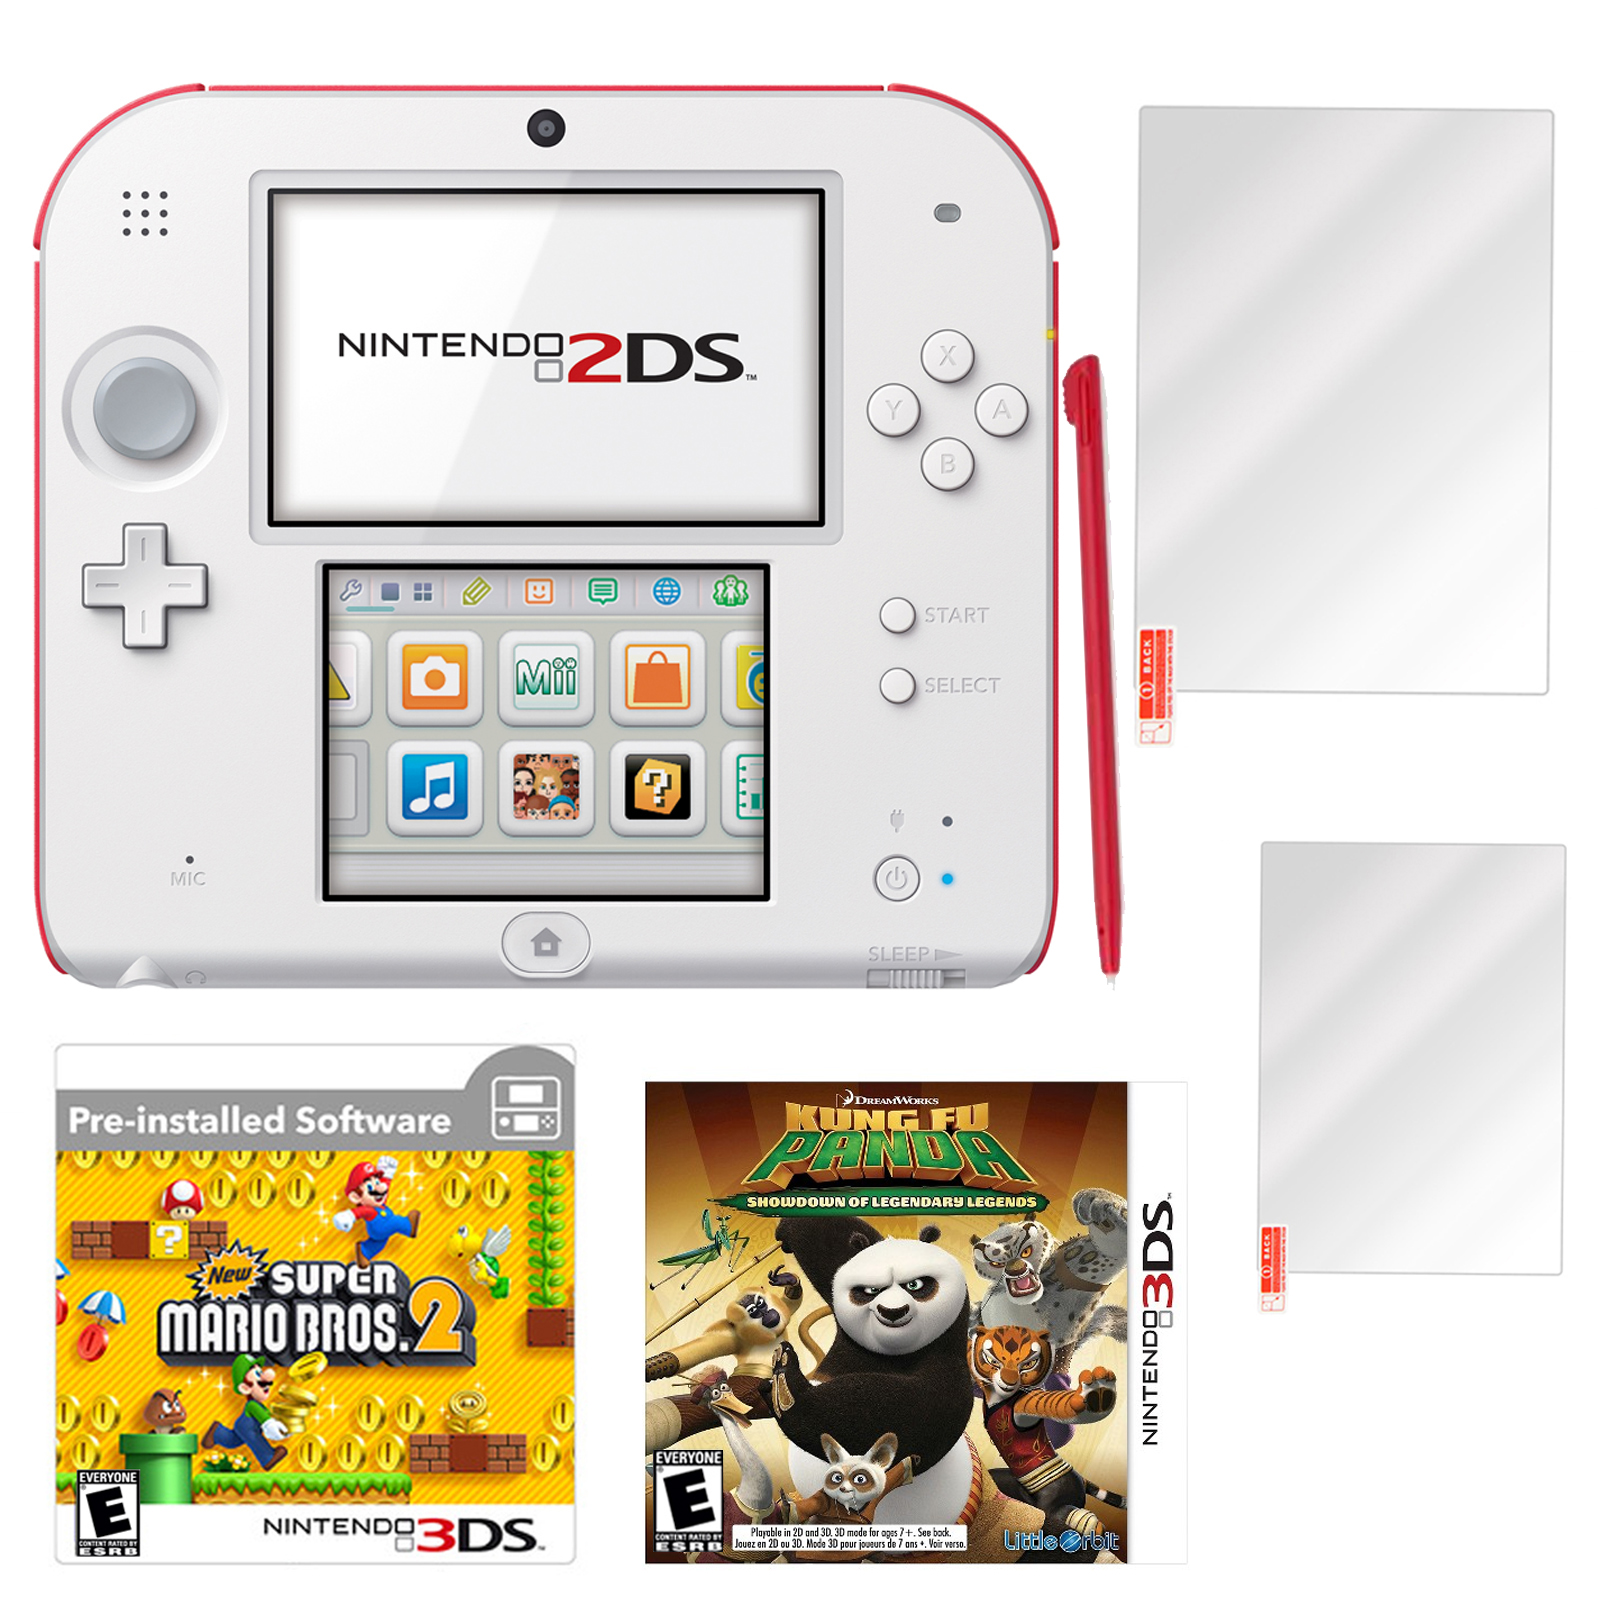 2DS Super Mario Bros 2 Scarlet Red with Kung Fu Panda and Screen Protector